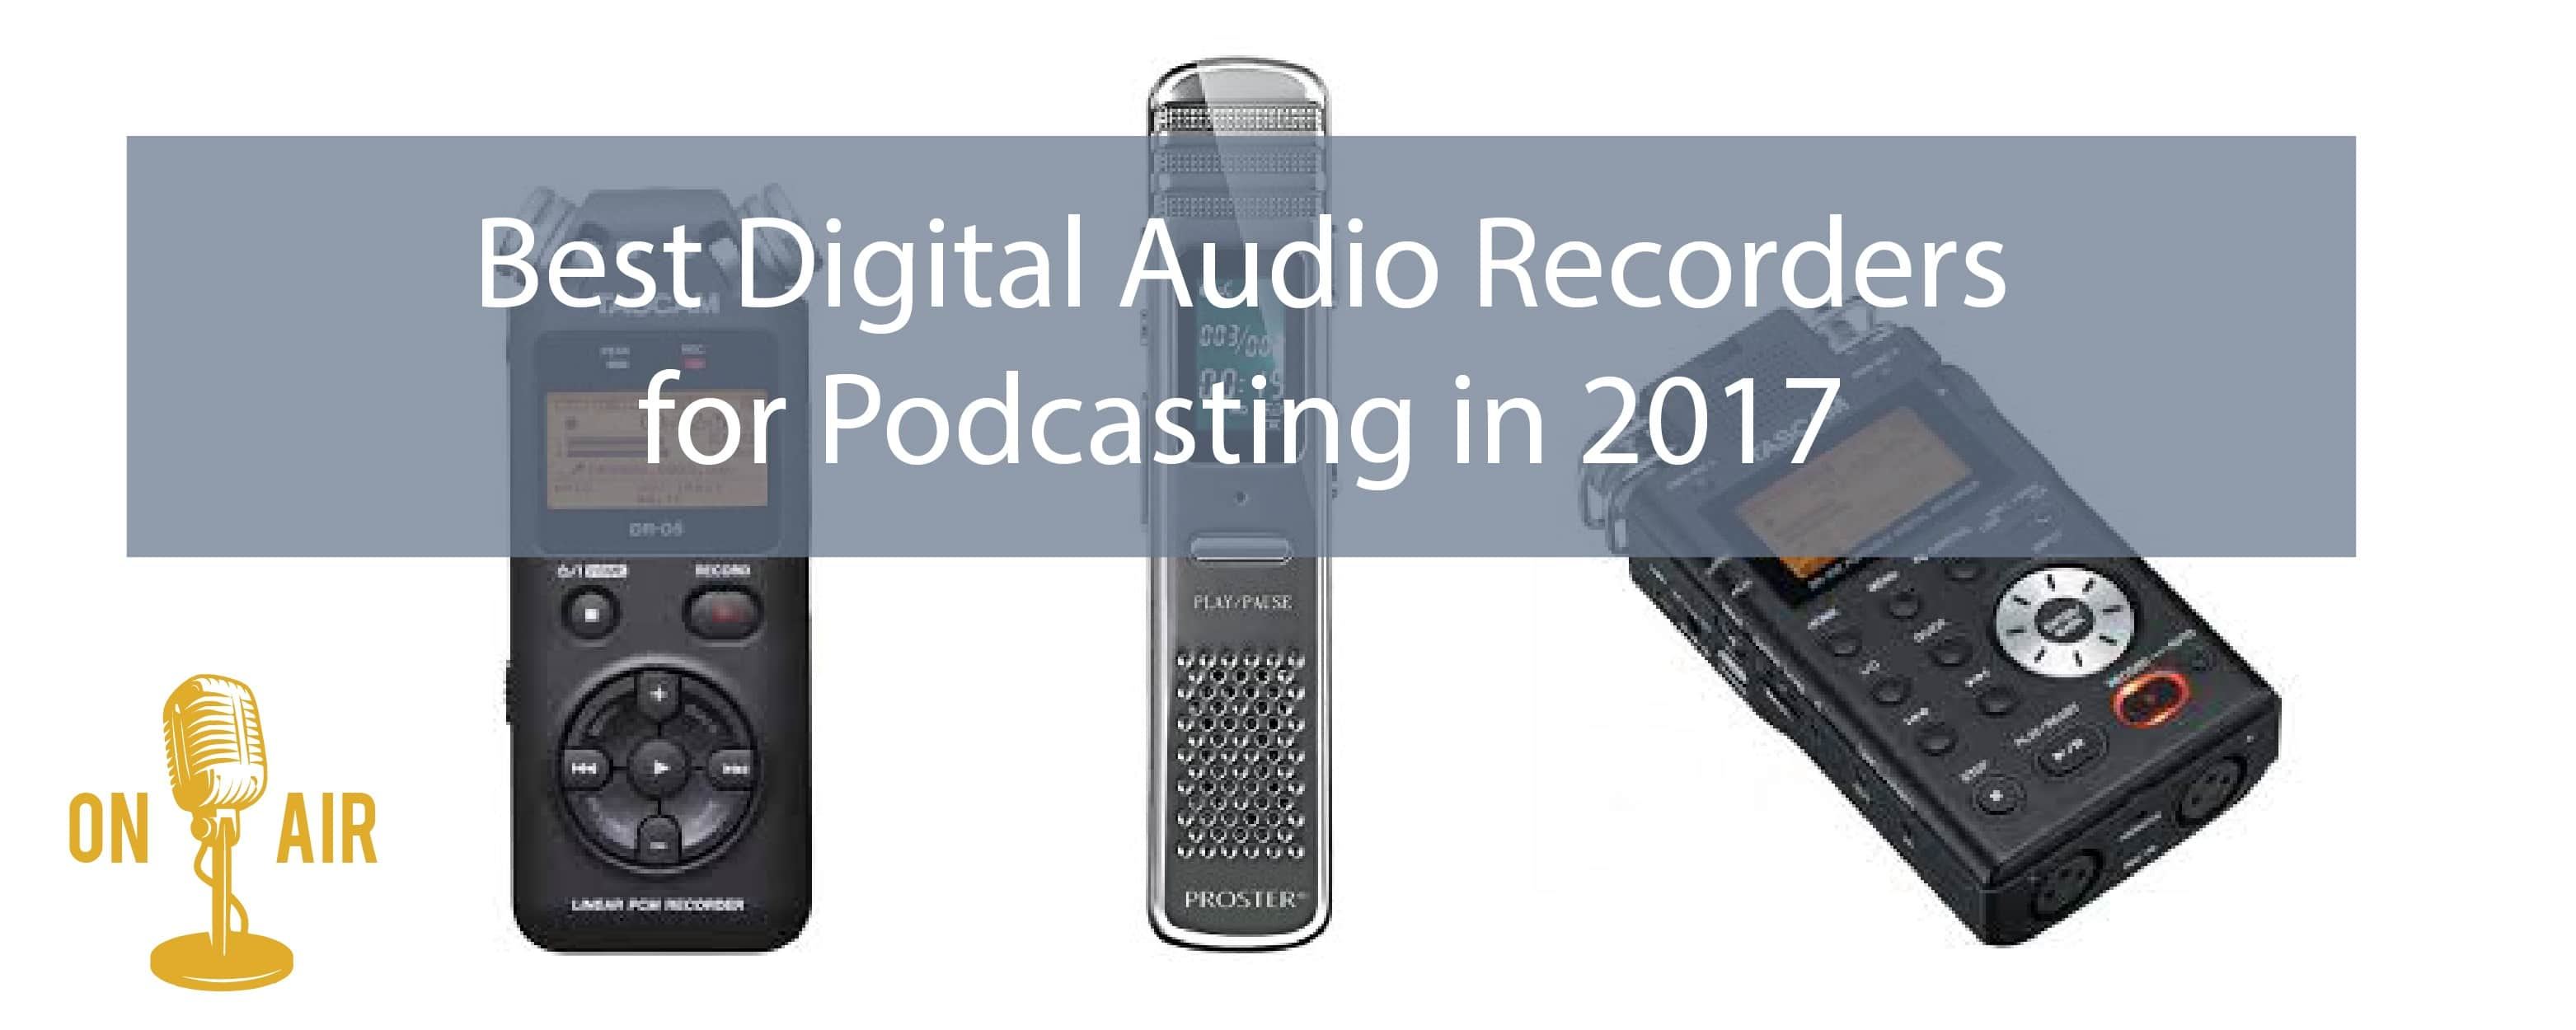 Best Digital Audio Recorders for Podcasting in 2017 | Keynote Content